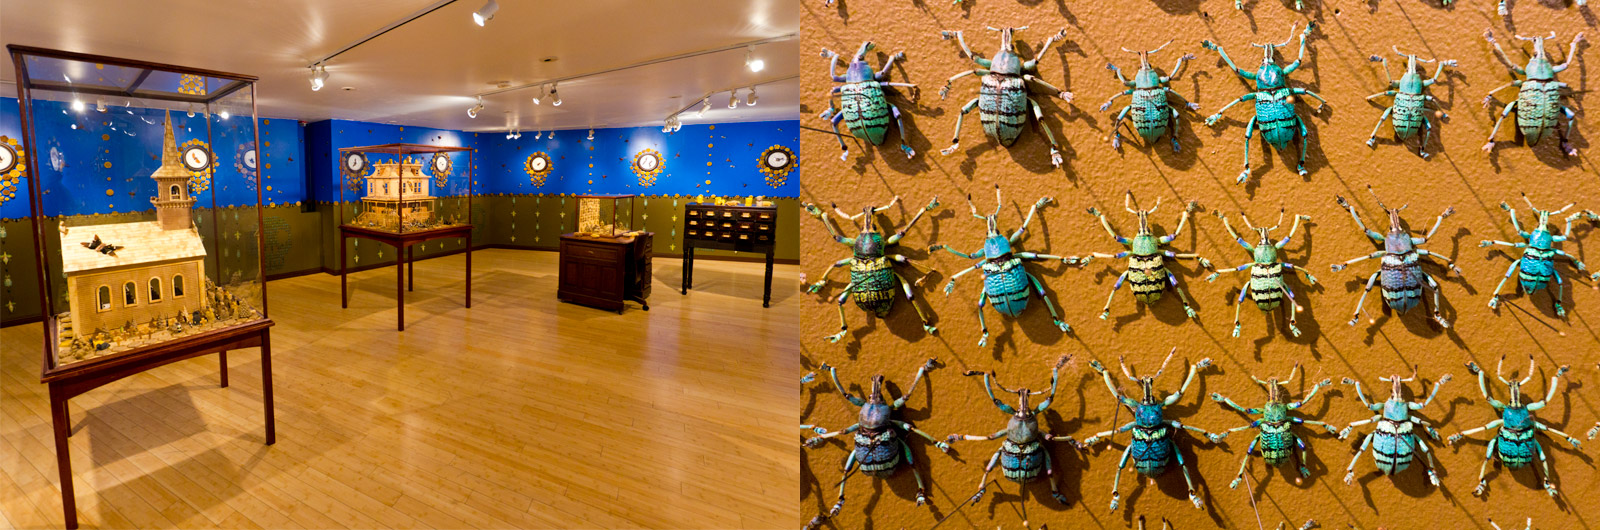 Inside the Craft and Folk Art Museum on Wilshire Blvd in Los Angeles, California to see an exhibit by Jennifer Angus titled: All Creatures Great and Small